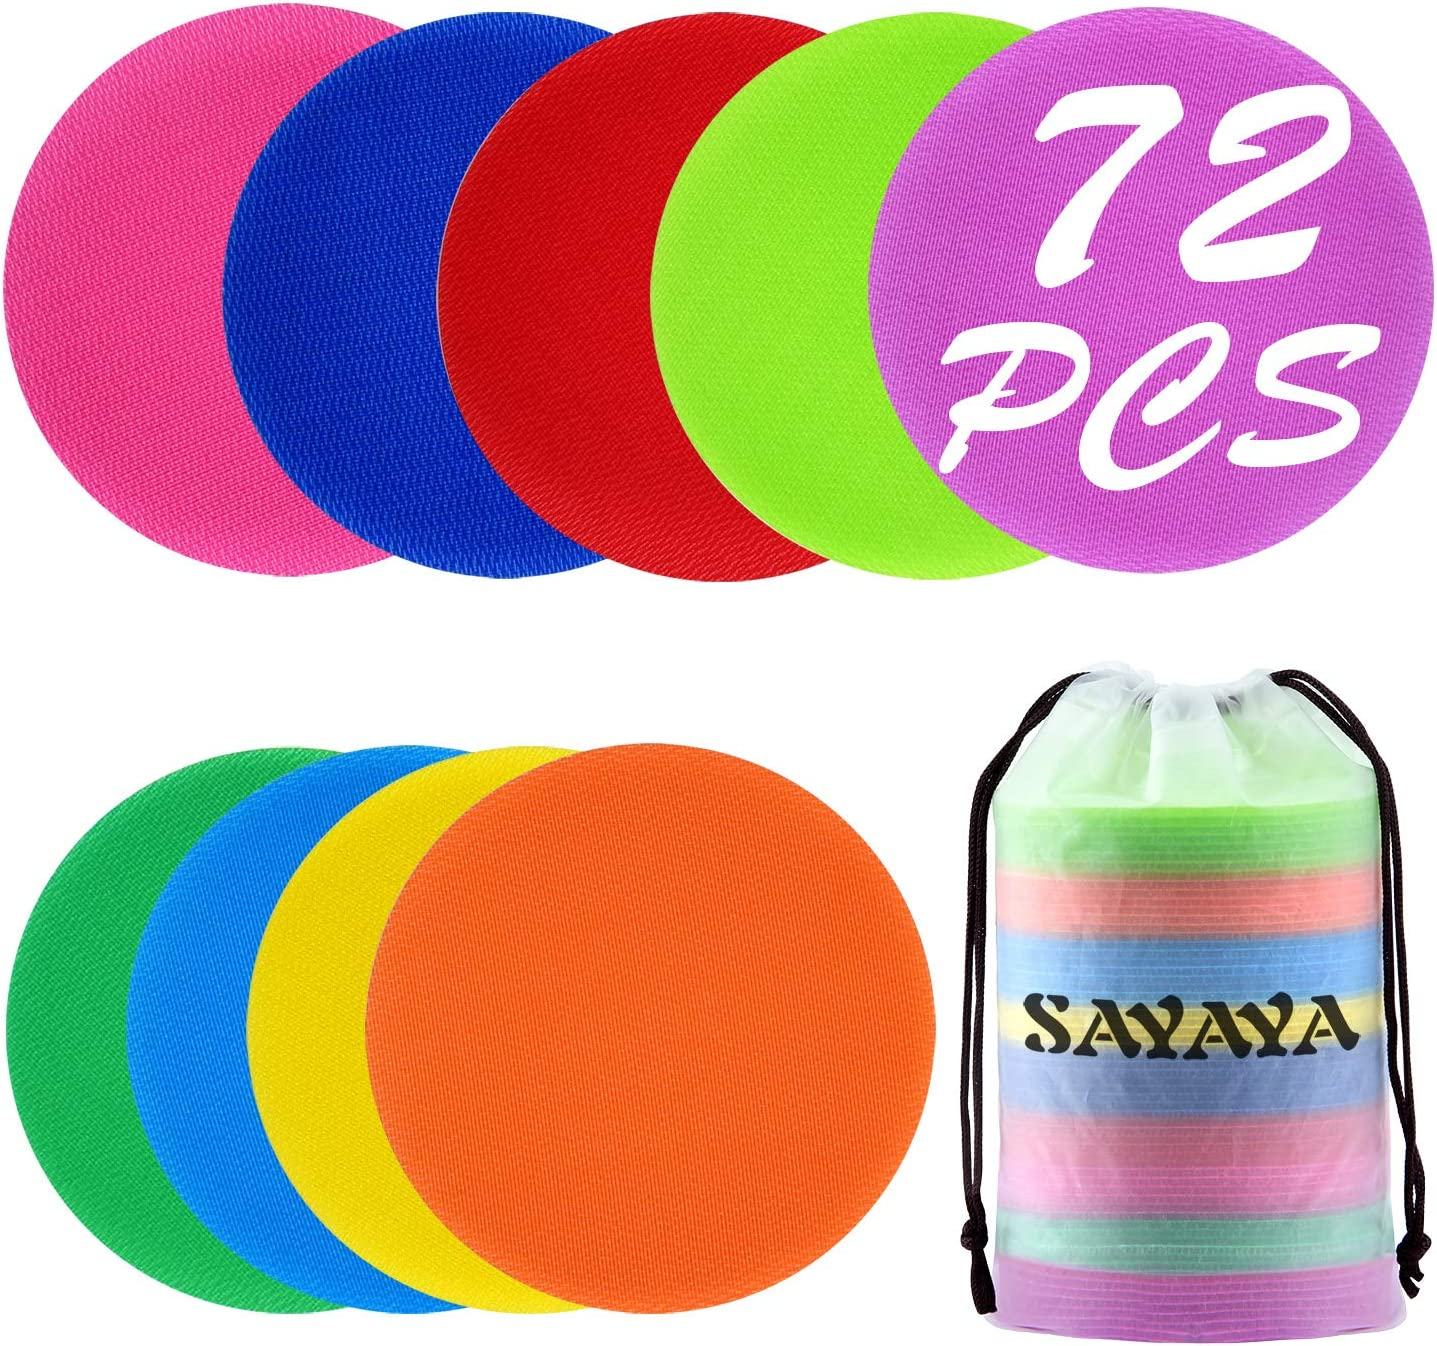 72 Pieces Carpet Markers 4 Inch Floor Sit Markers Carpet Spot Markers Rug Squares Circles Dots for Gym Classroom Preschool Kindergarten Elementary Teachers 6 Colors